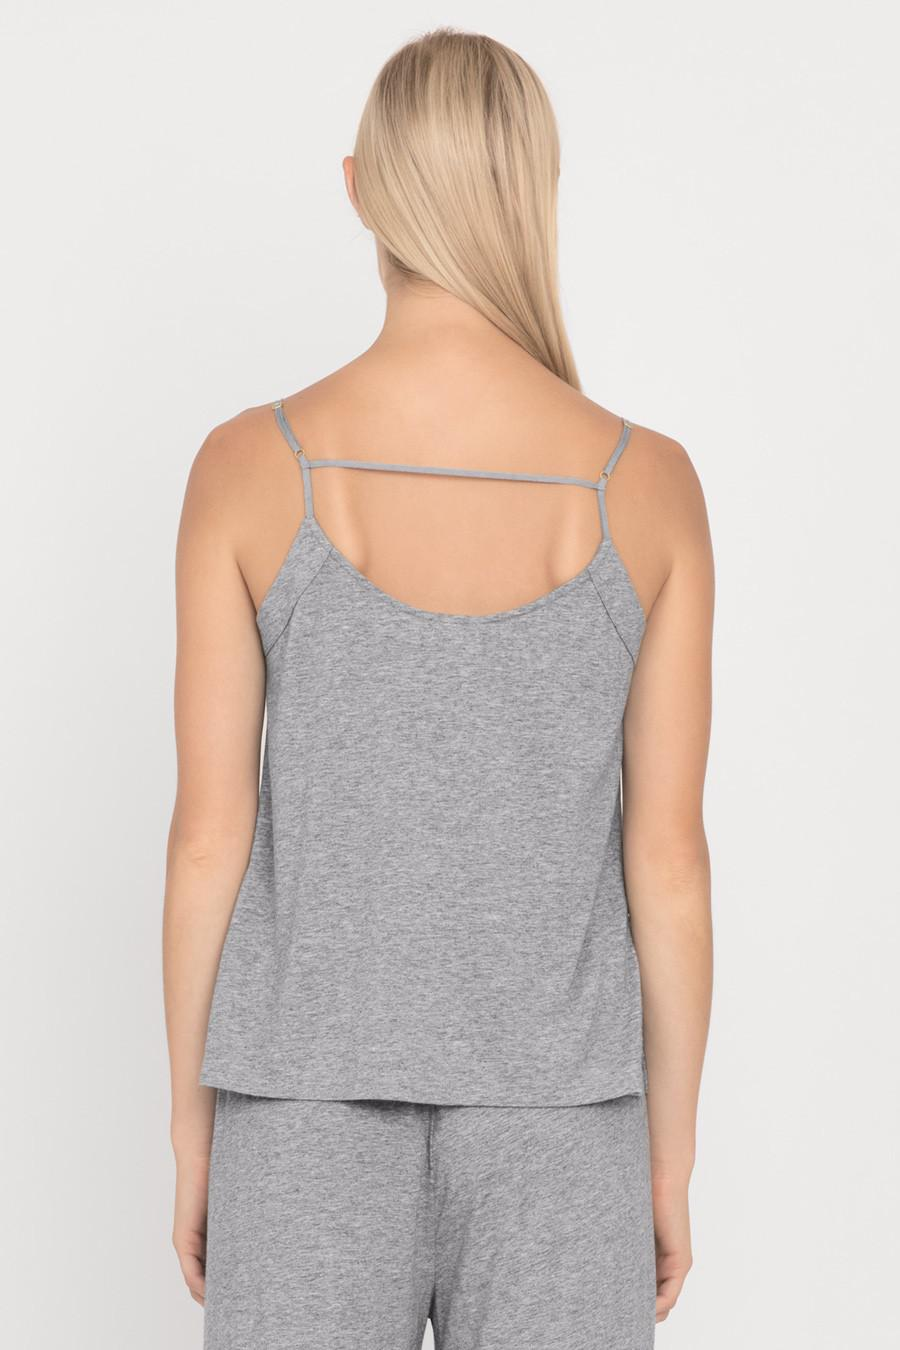 Women's Pima Cami Top in Heather Grey   Size: Large   Pima Modal Blend by Cuyana 2